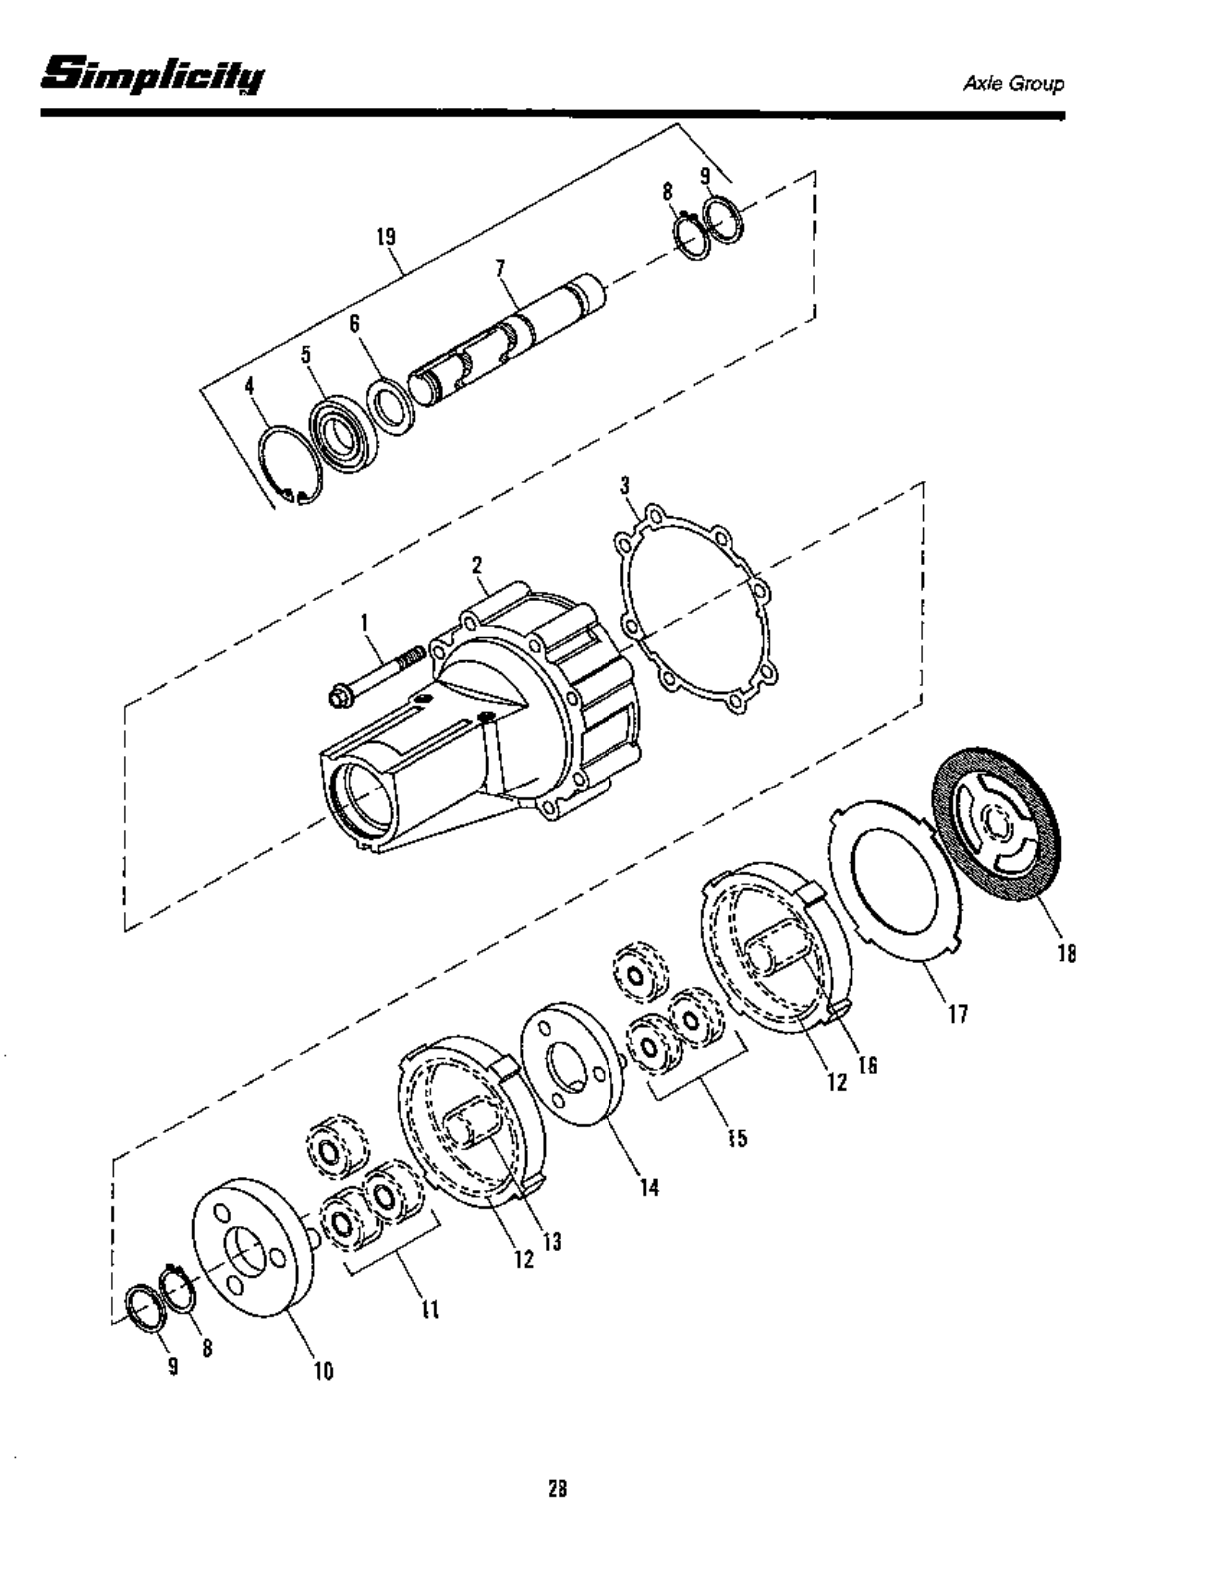 Page 30 of Simplicity Lawn Mower 12.5 LTH User Guide